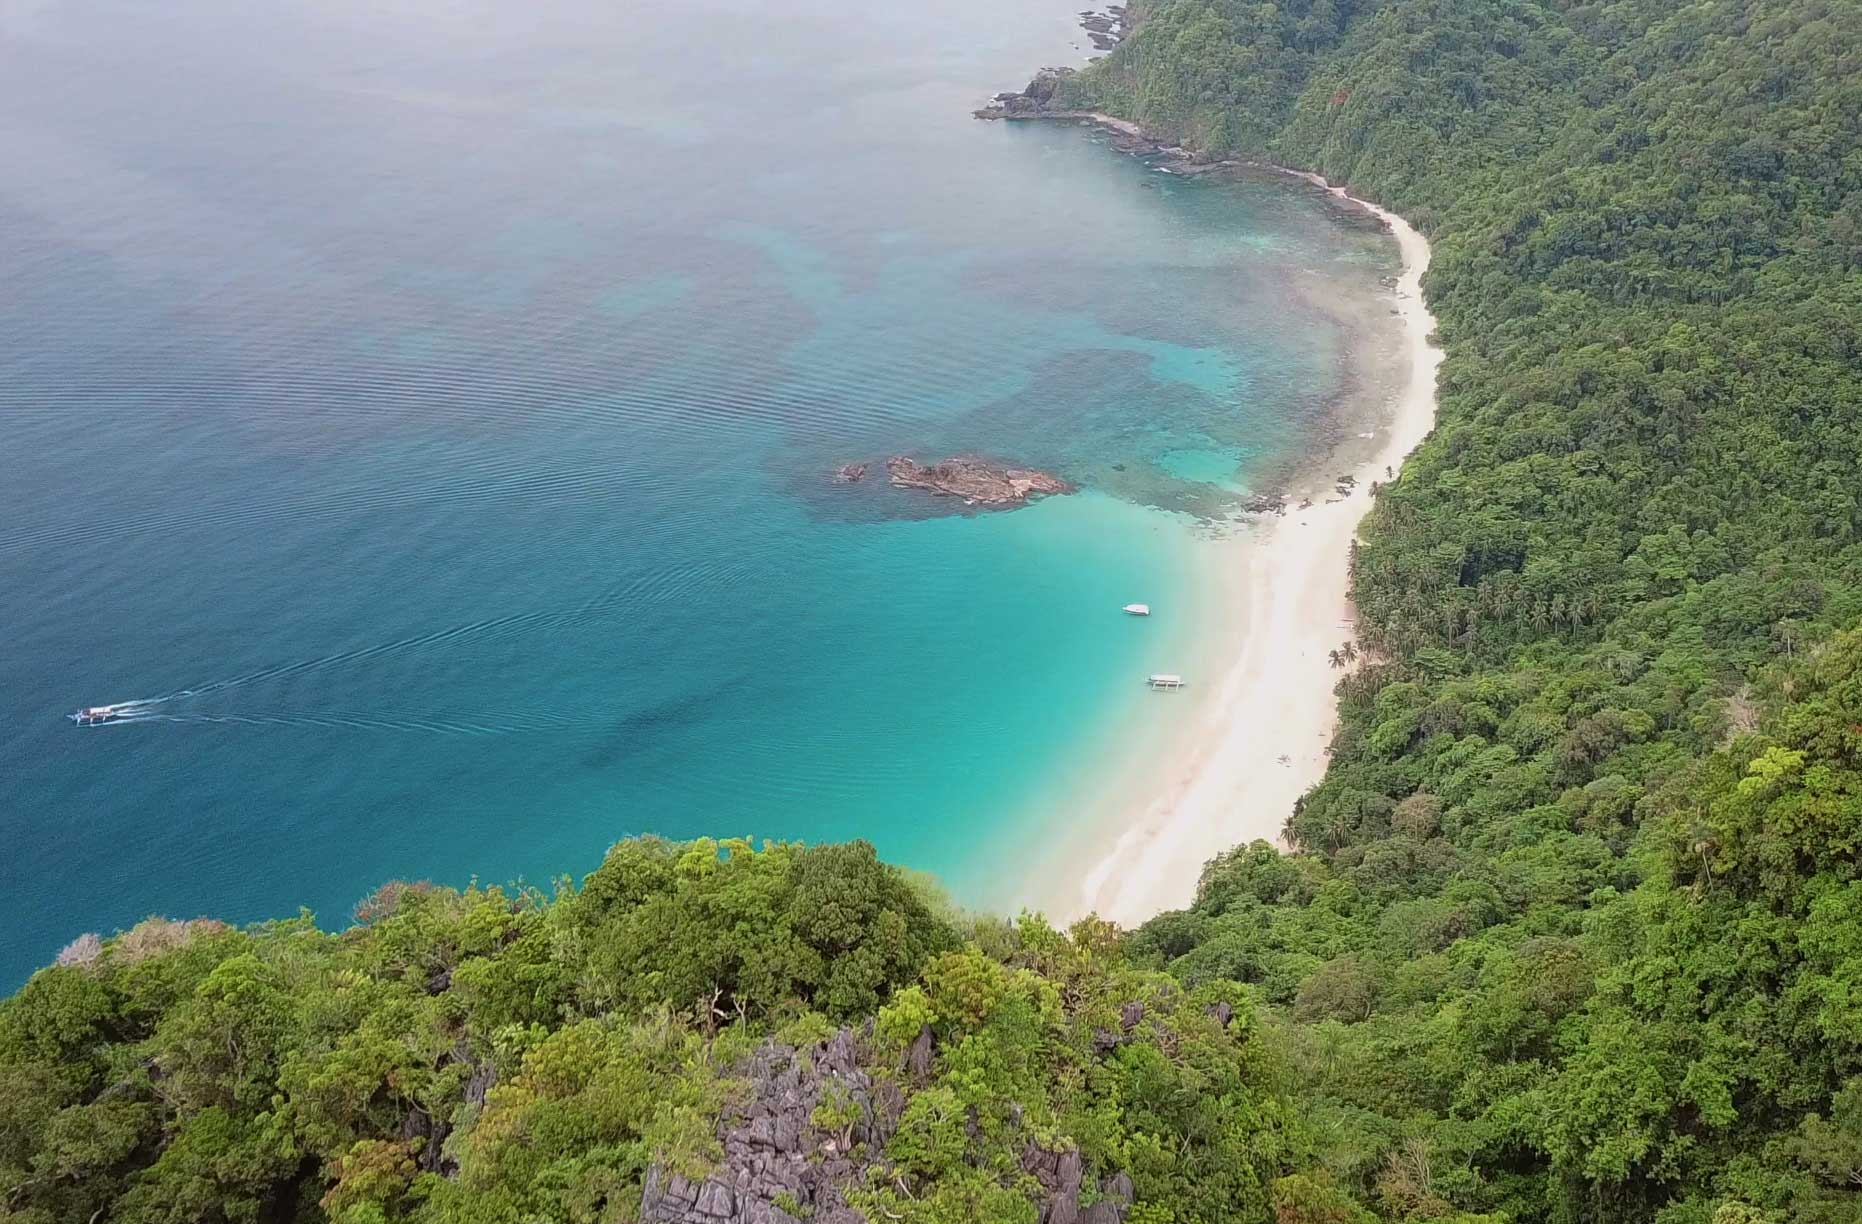 Aerial (drone) view of Cadlao Island's beautiful, soft sand beaches and clear turquoise waters.